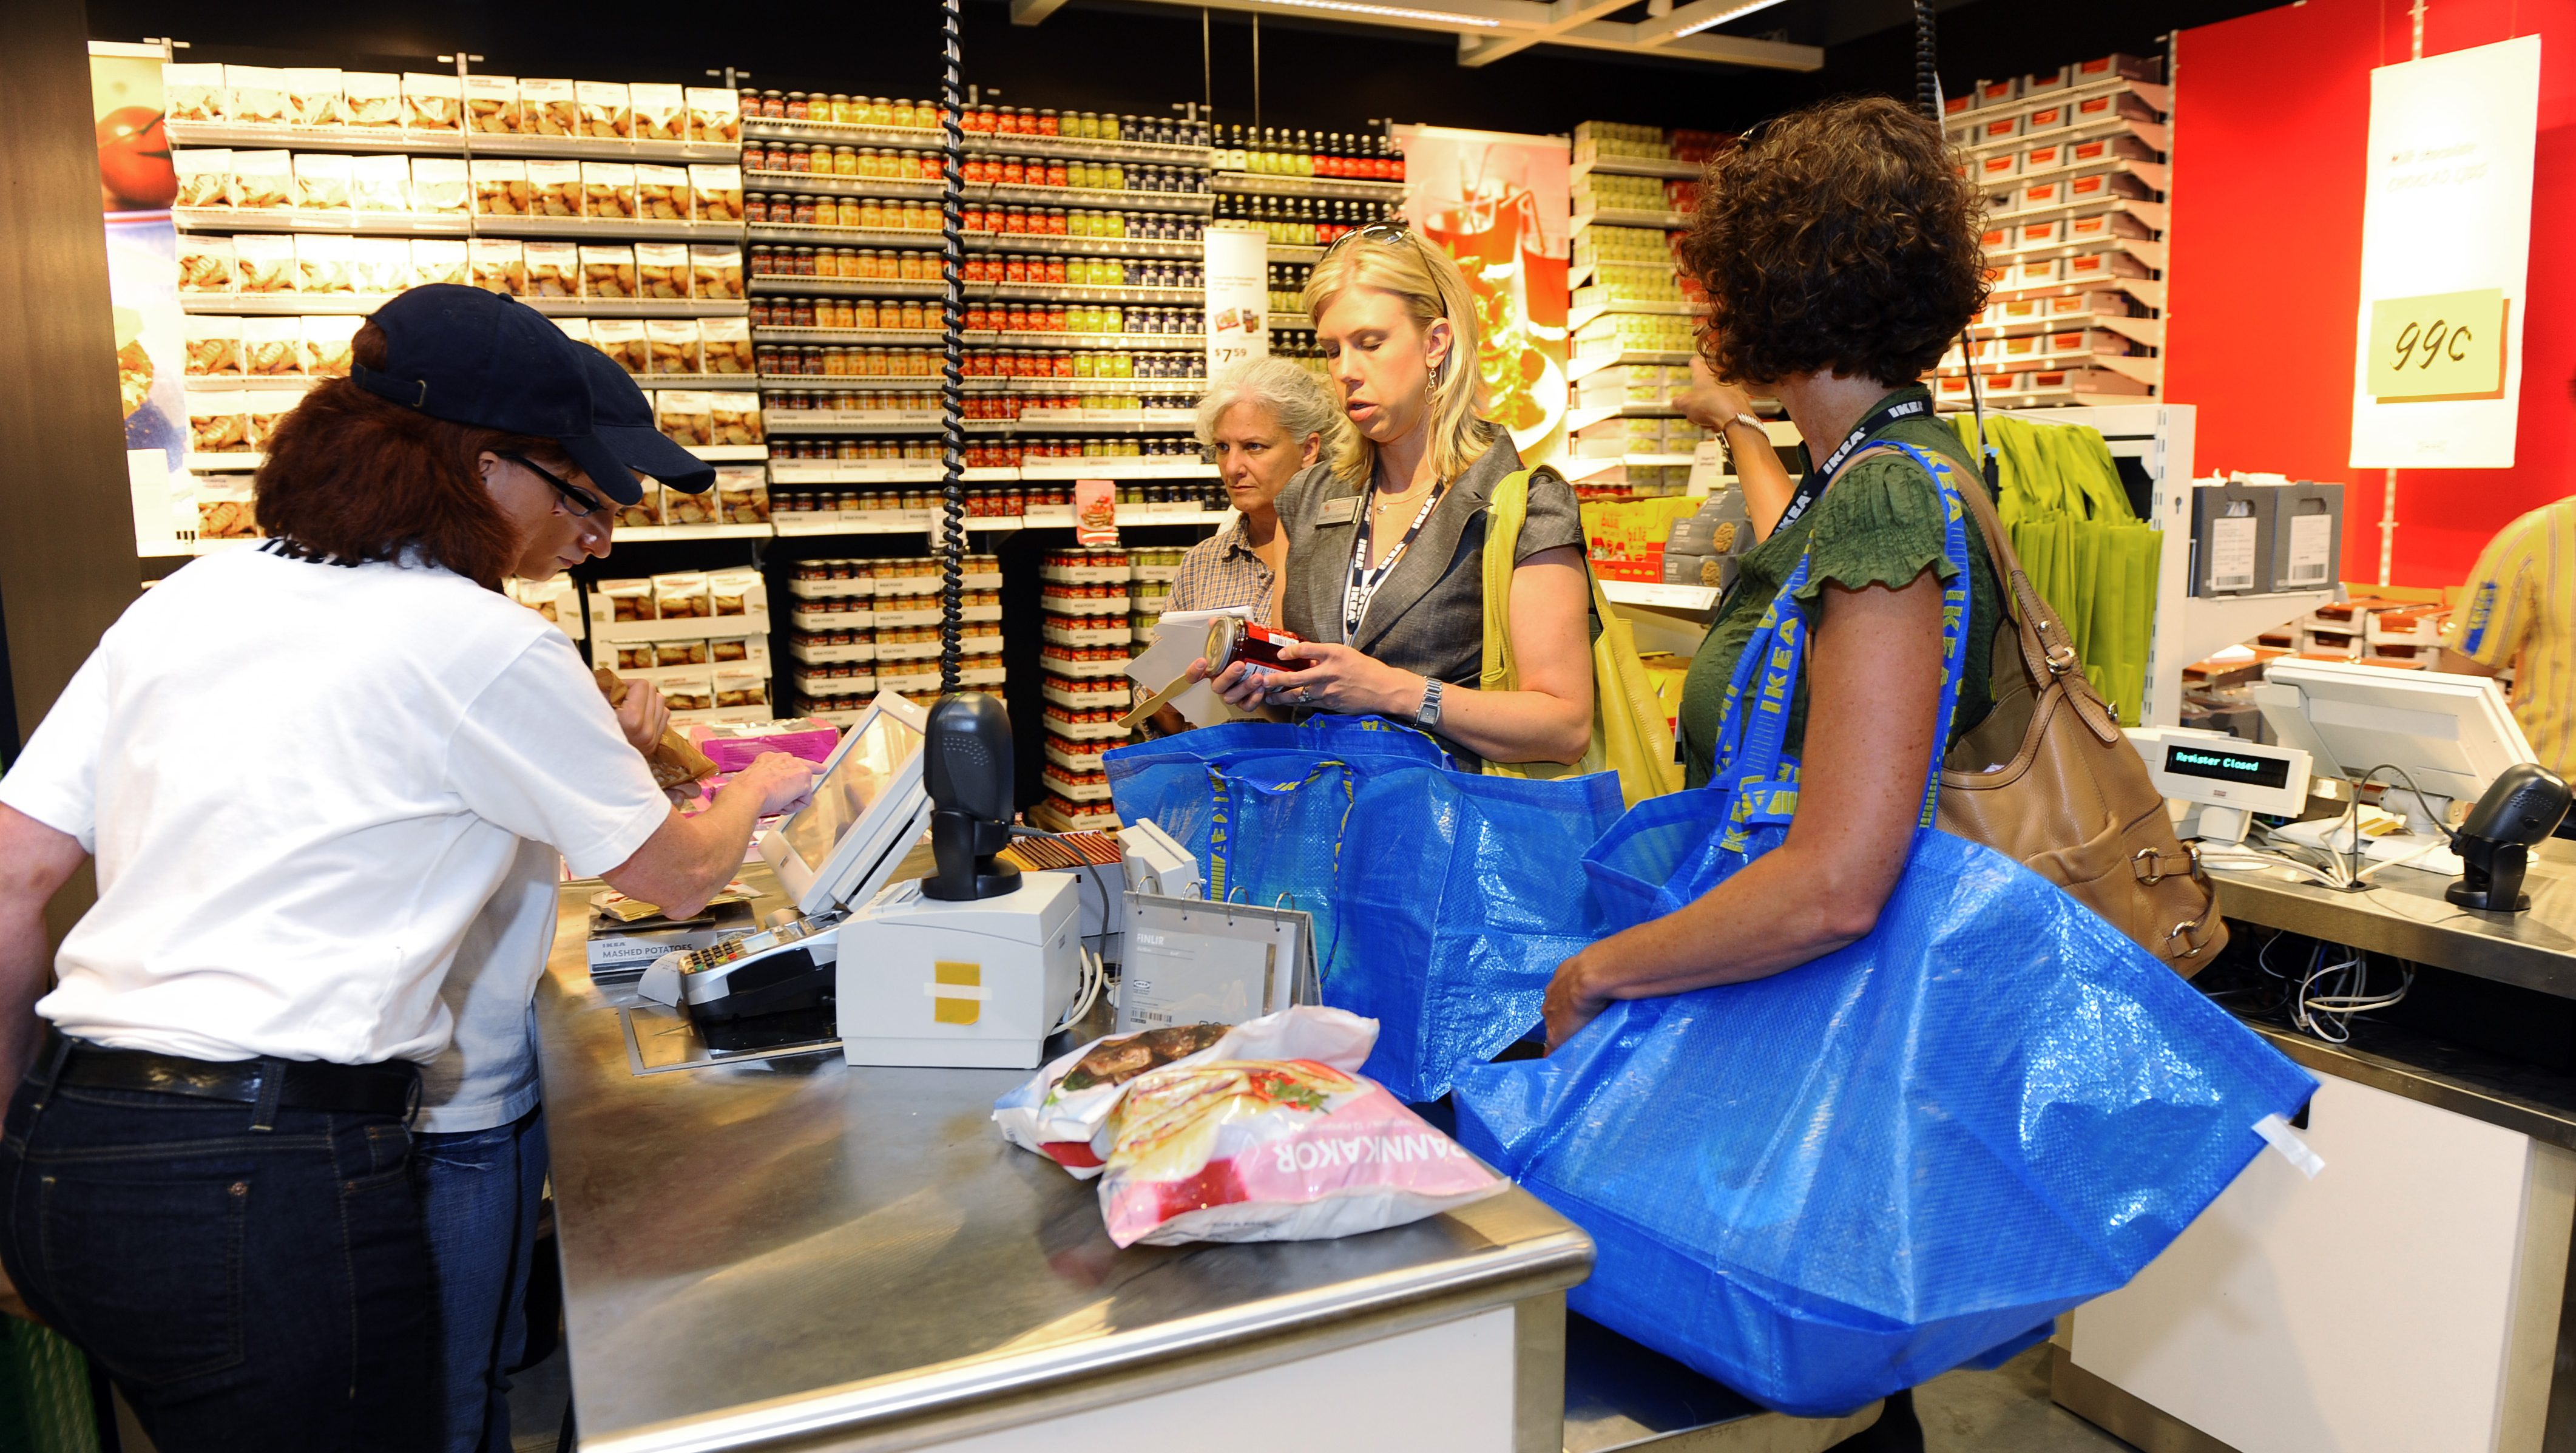 Customers shop at the IKEA grand opening in the Denver suburb of Centennial, Colo.,  Wednesday, July 27, 2011. (Jack Dempsey/AP Images for IKEA)